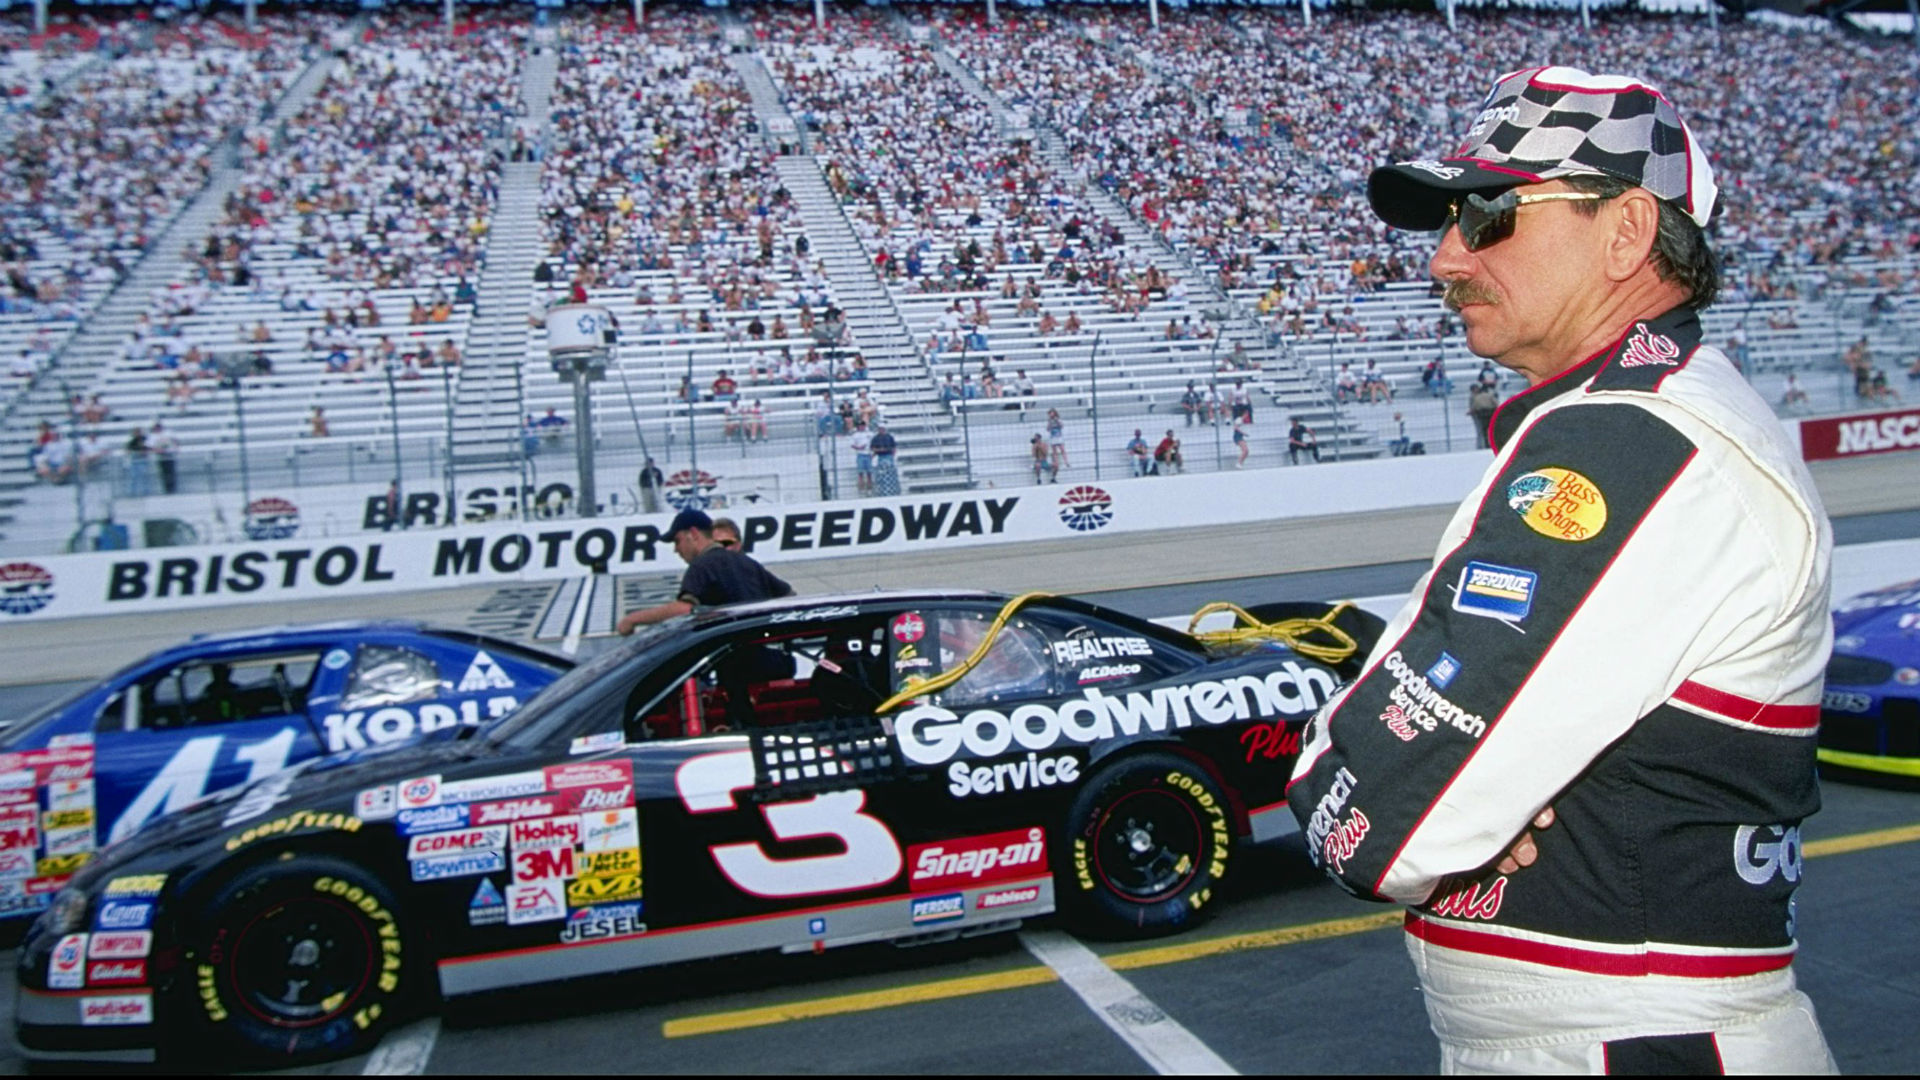 Dale Earnhardt wrecking Terry Labonte in '99 cemented Bristol's legacy